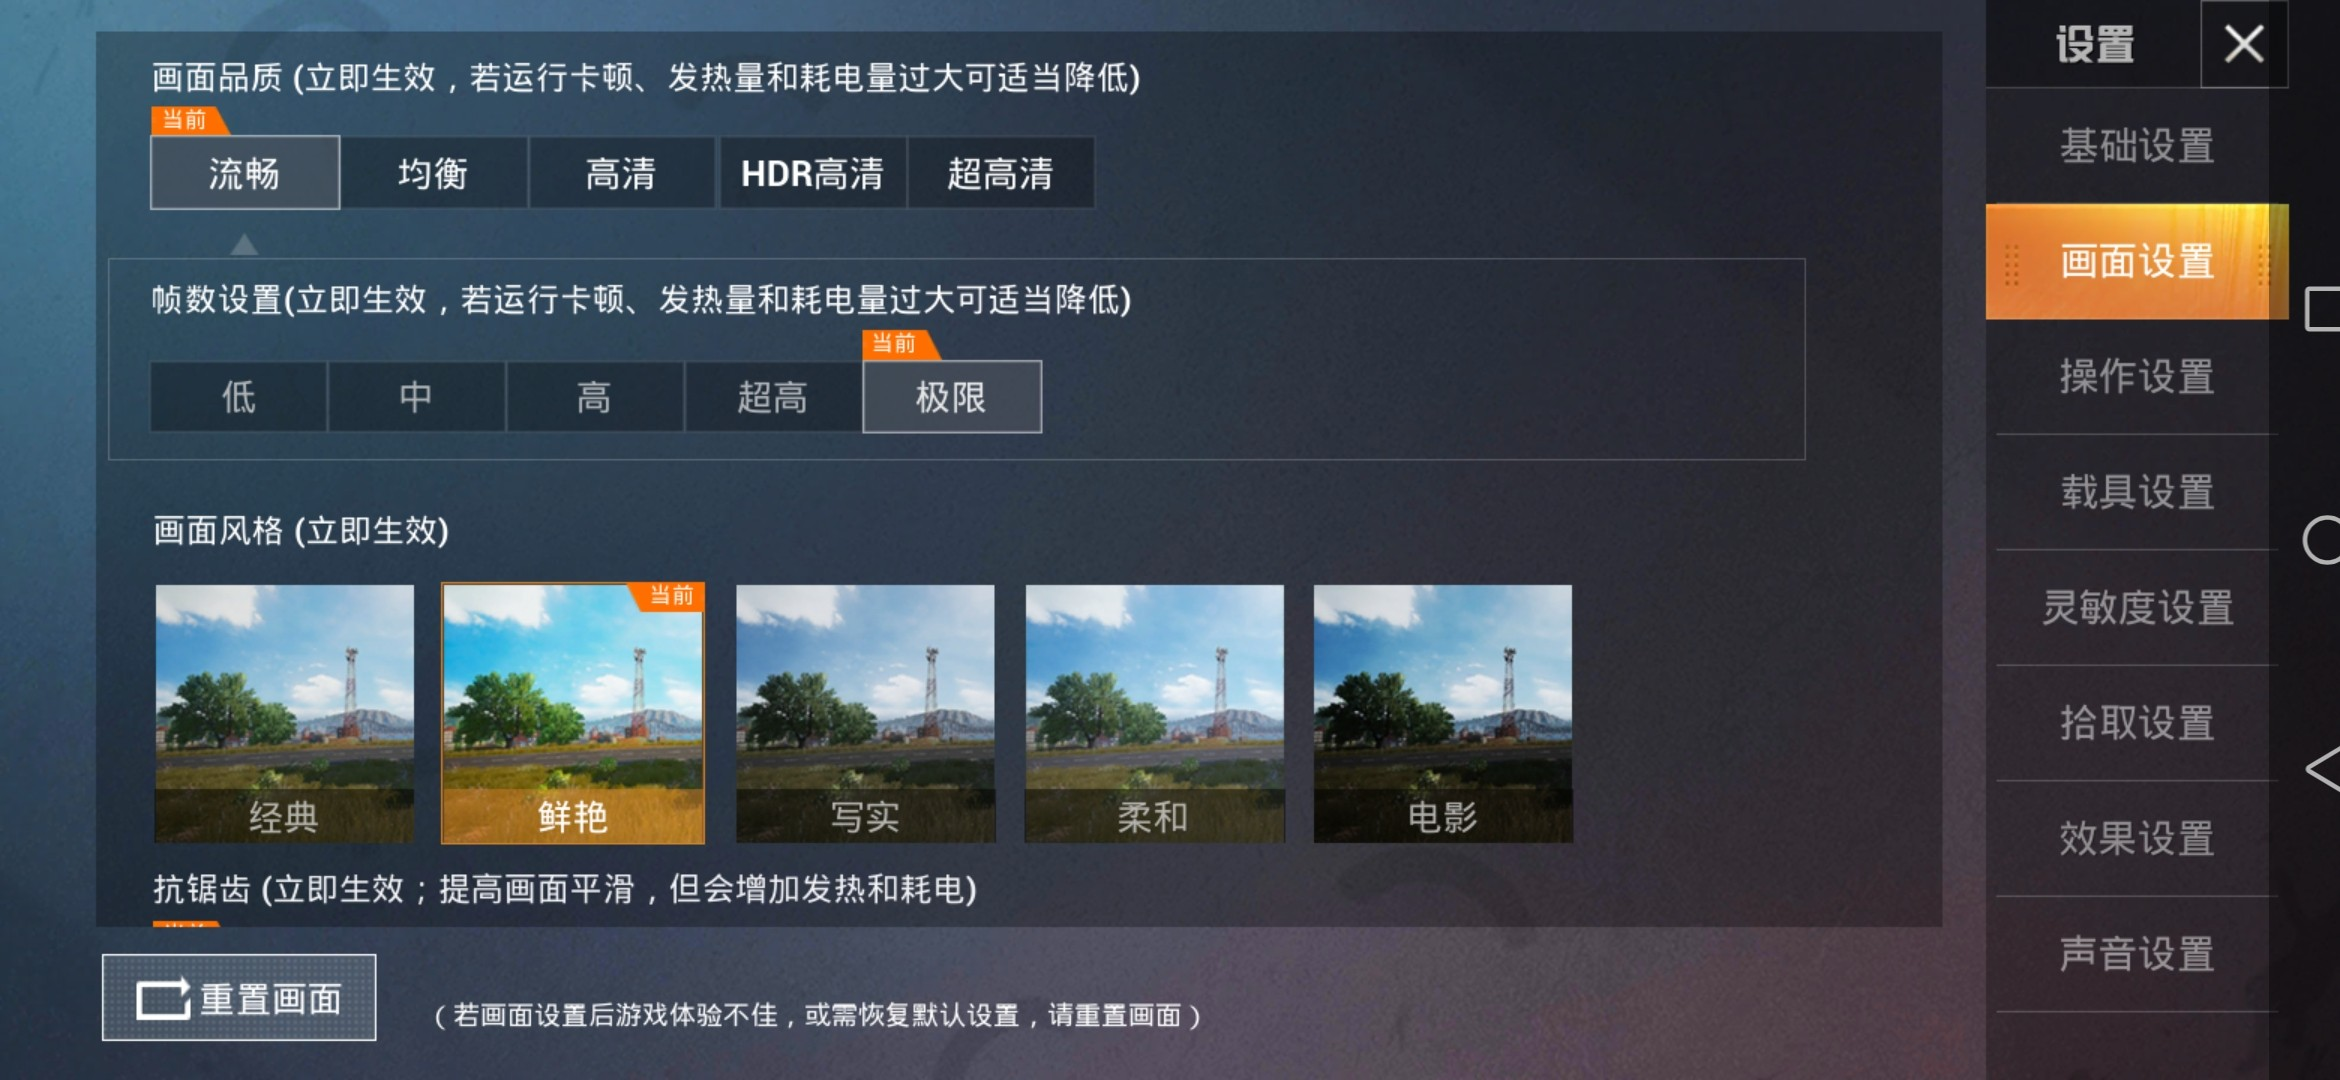 Screenshot_20200421_001815_com.tencent.tmgp.pubgmhd.jpg